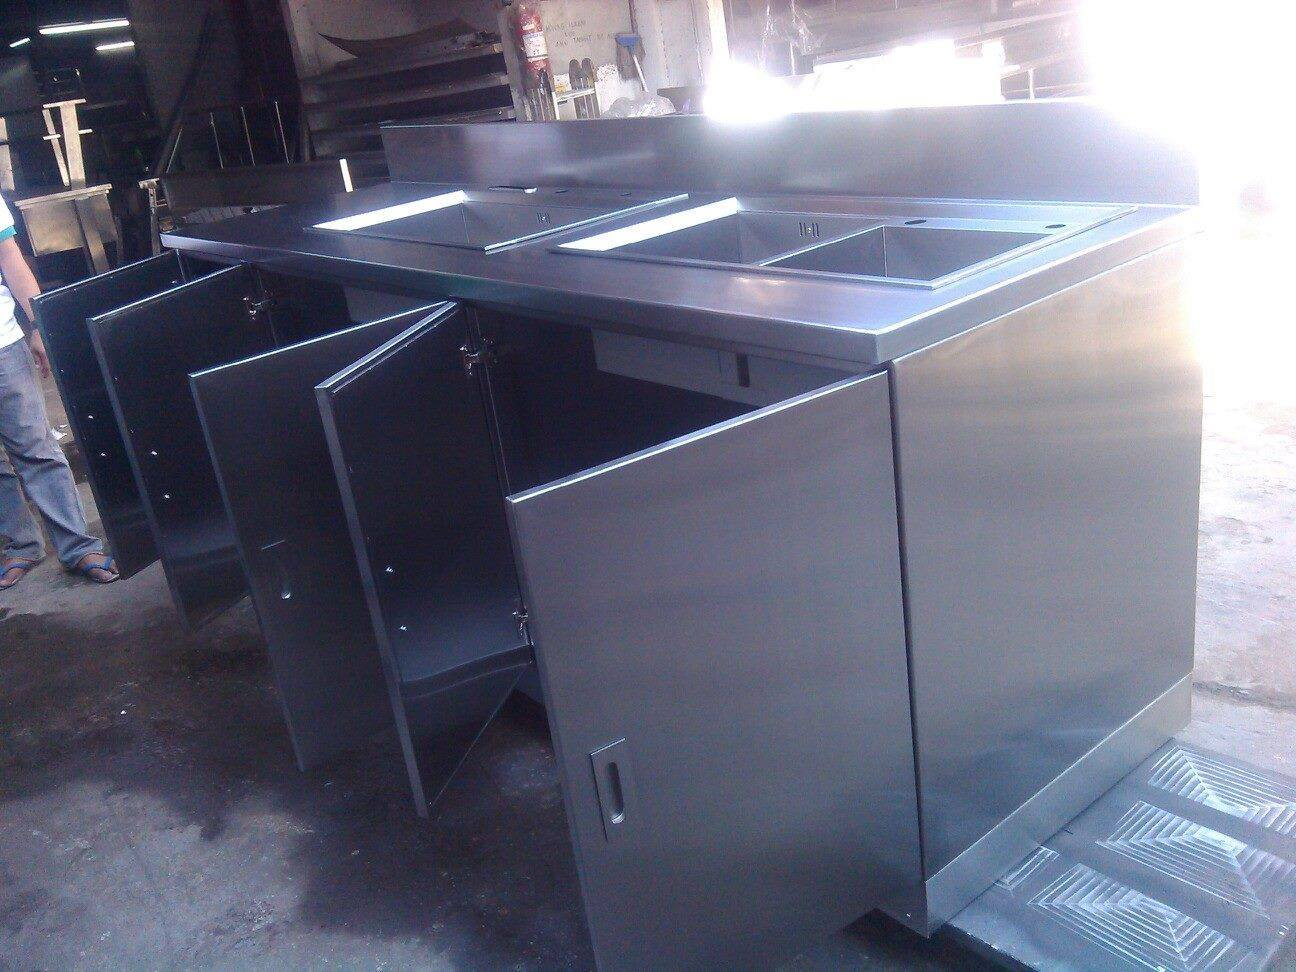 Steel Sinks for Commercial Kitchens